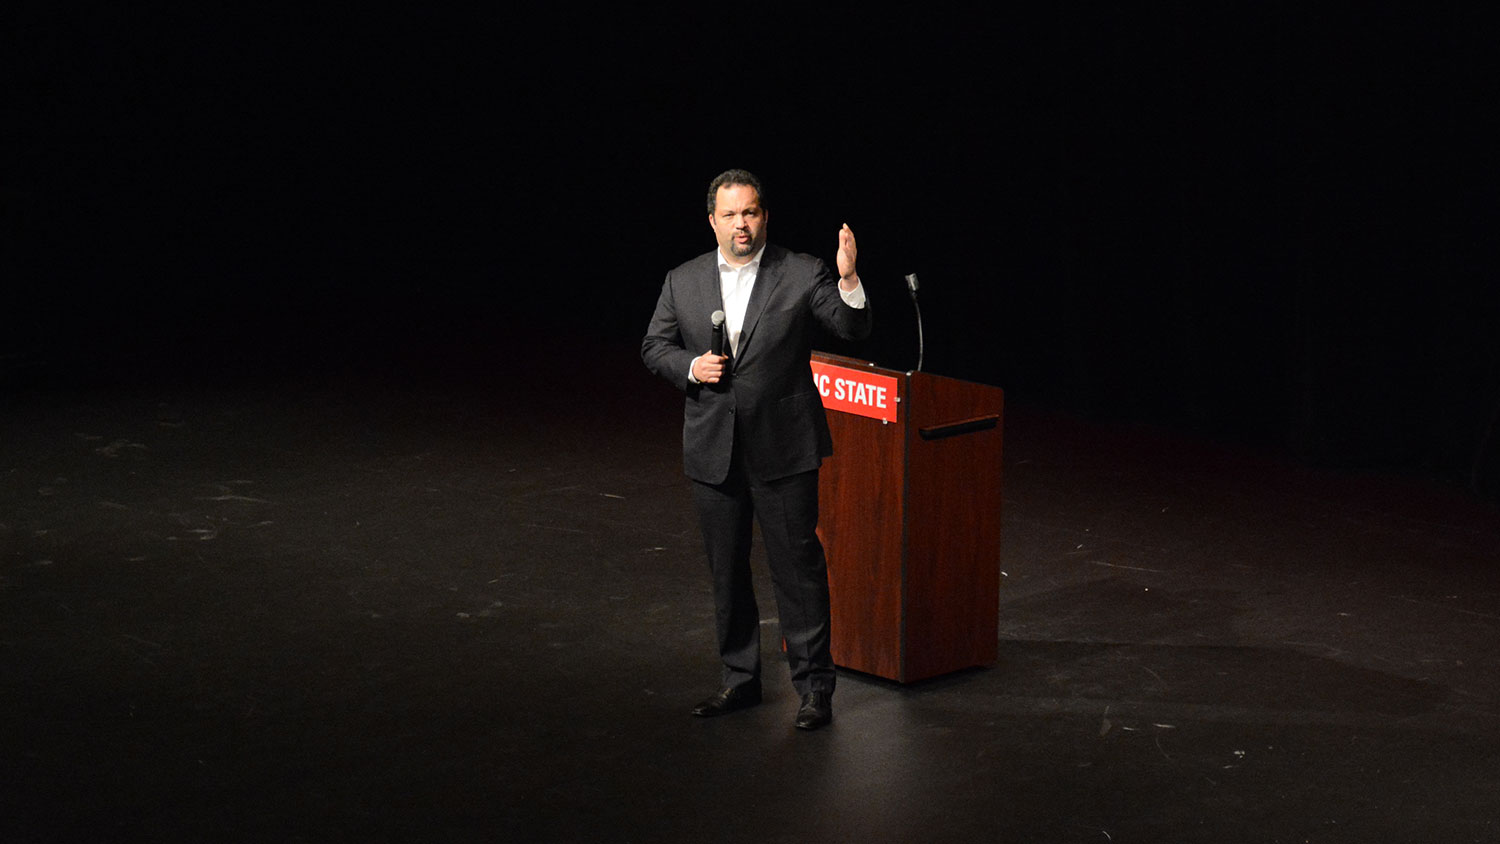 Benjamin Jealous speaks at NC State's MLK Commemoration in 2018